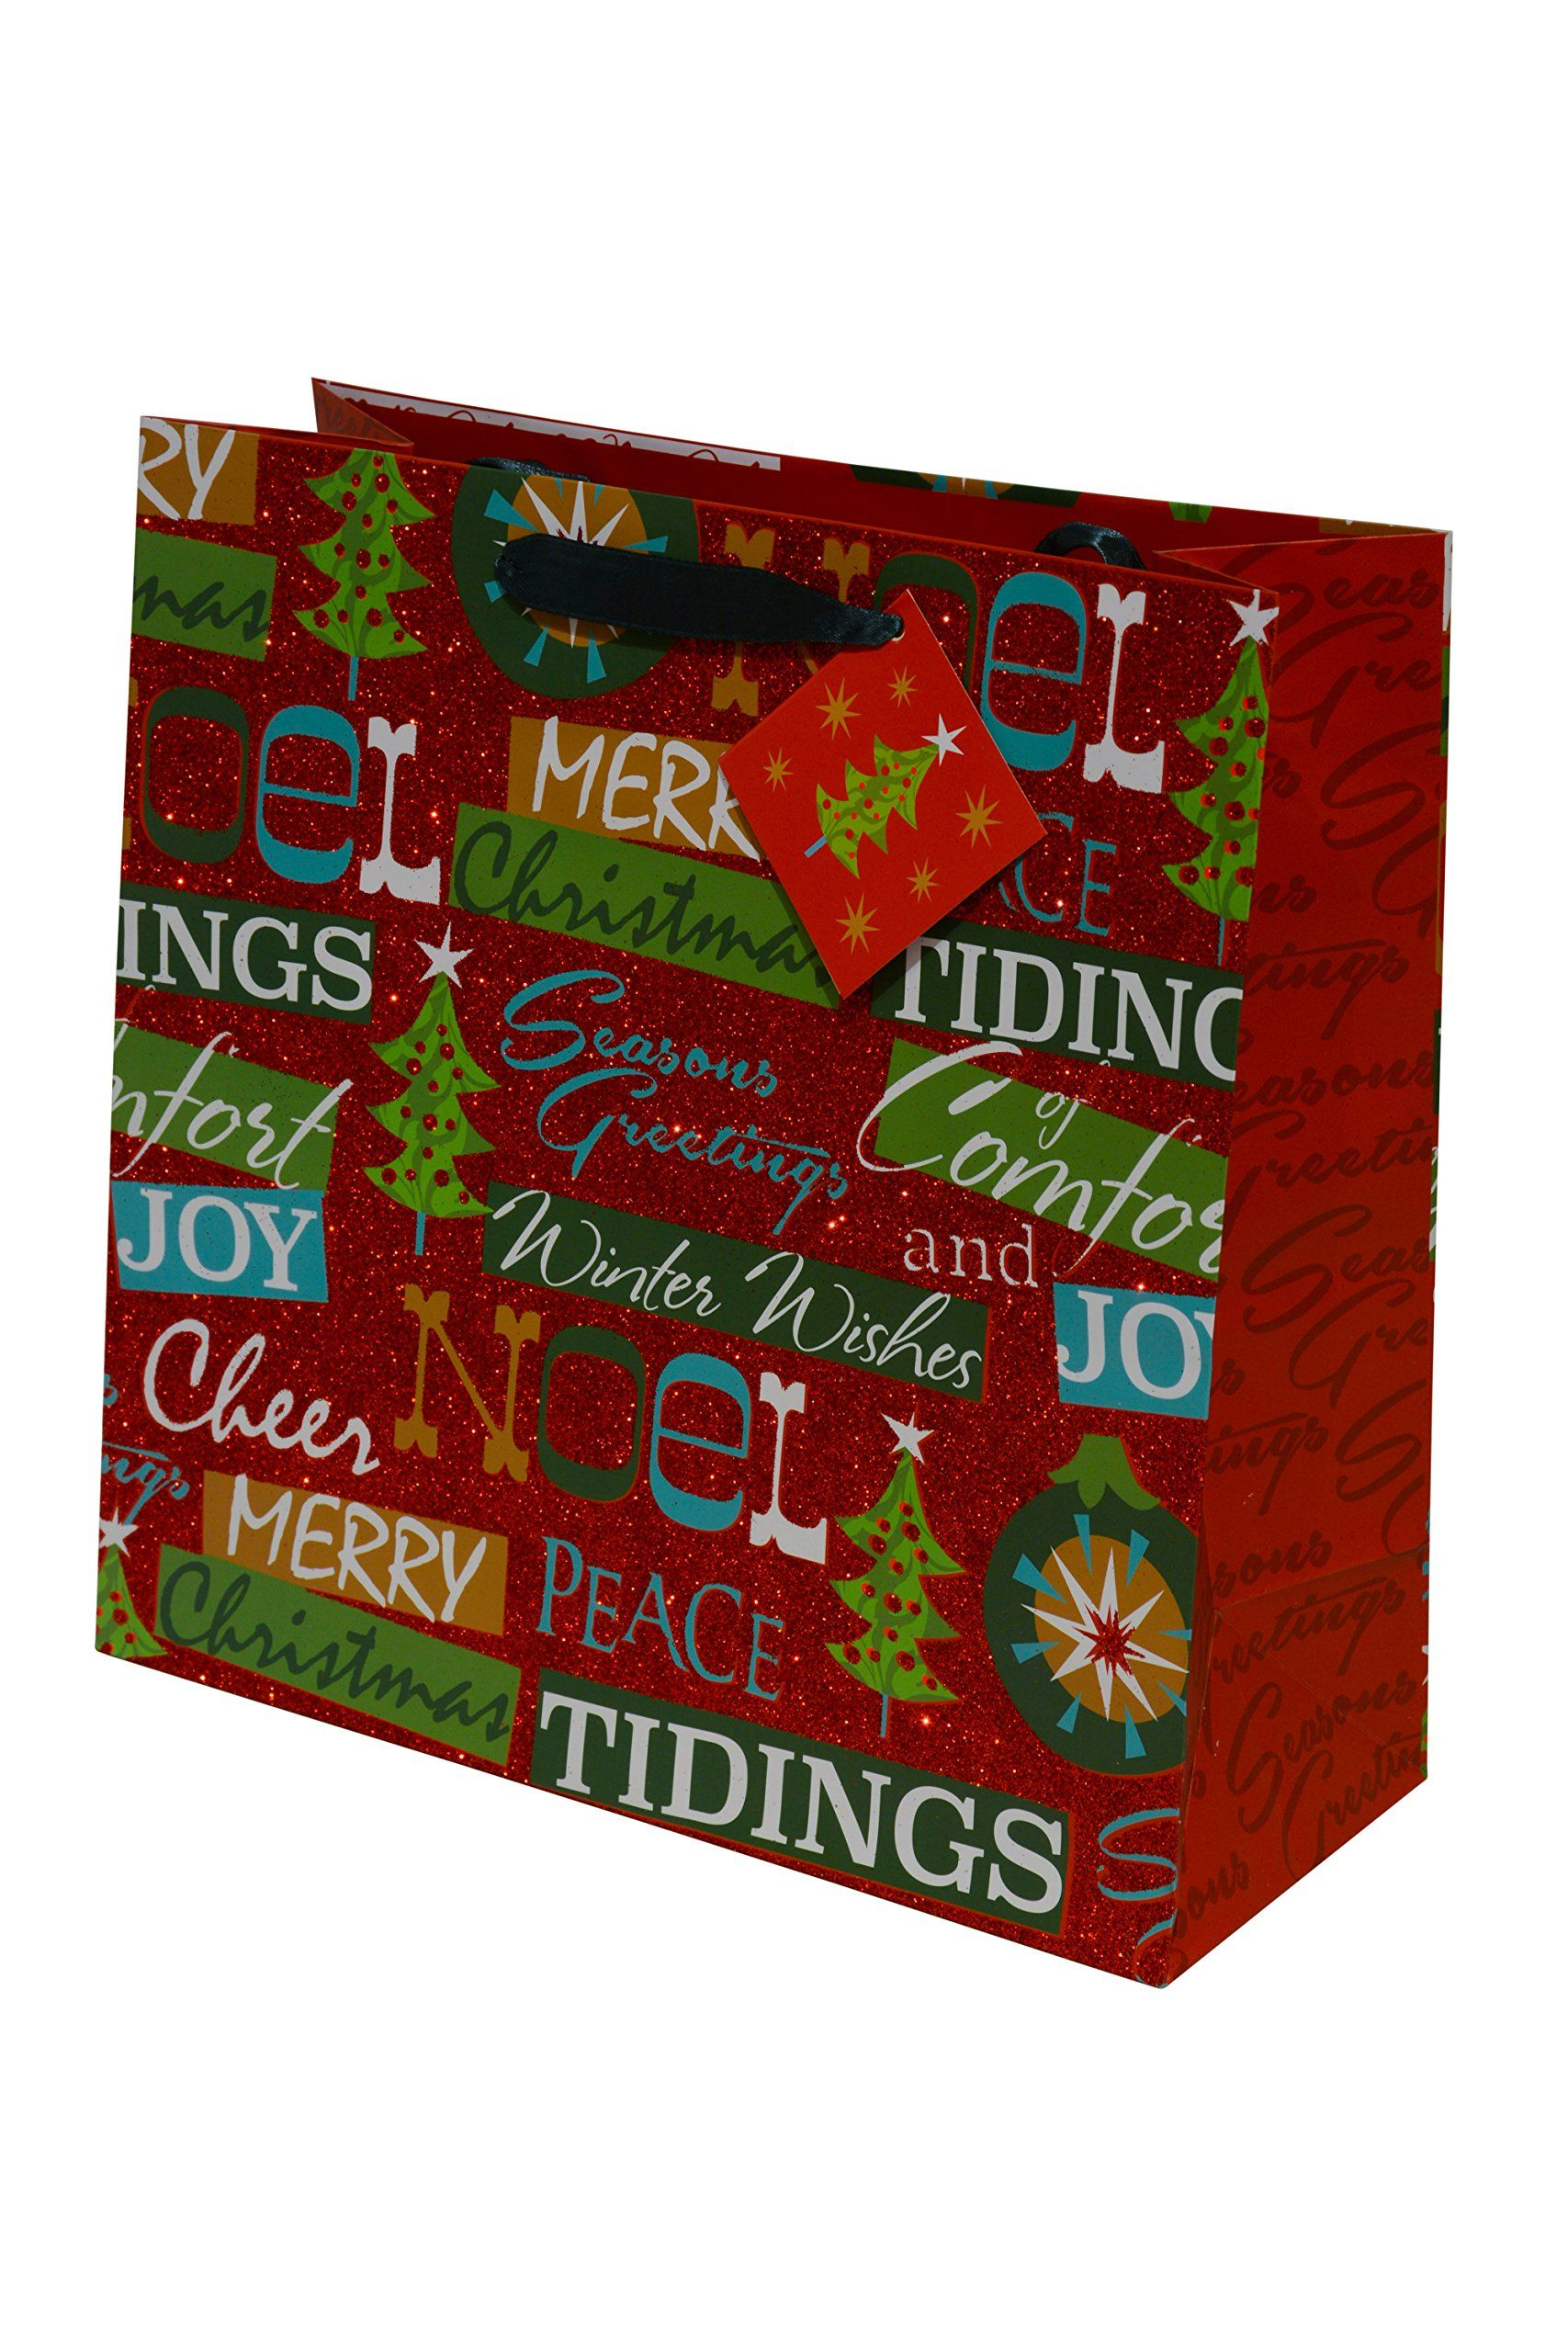 12 Christmas Gift Bags Bulk Large Square Glitter For Wring Holiday Gifts Assorted Prints 2